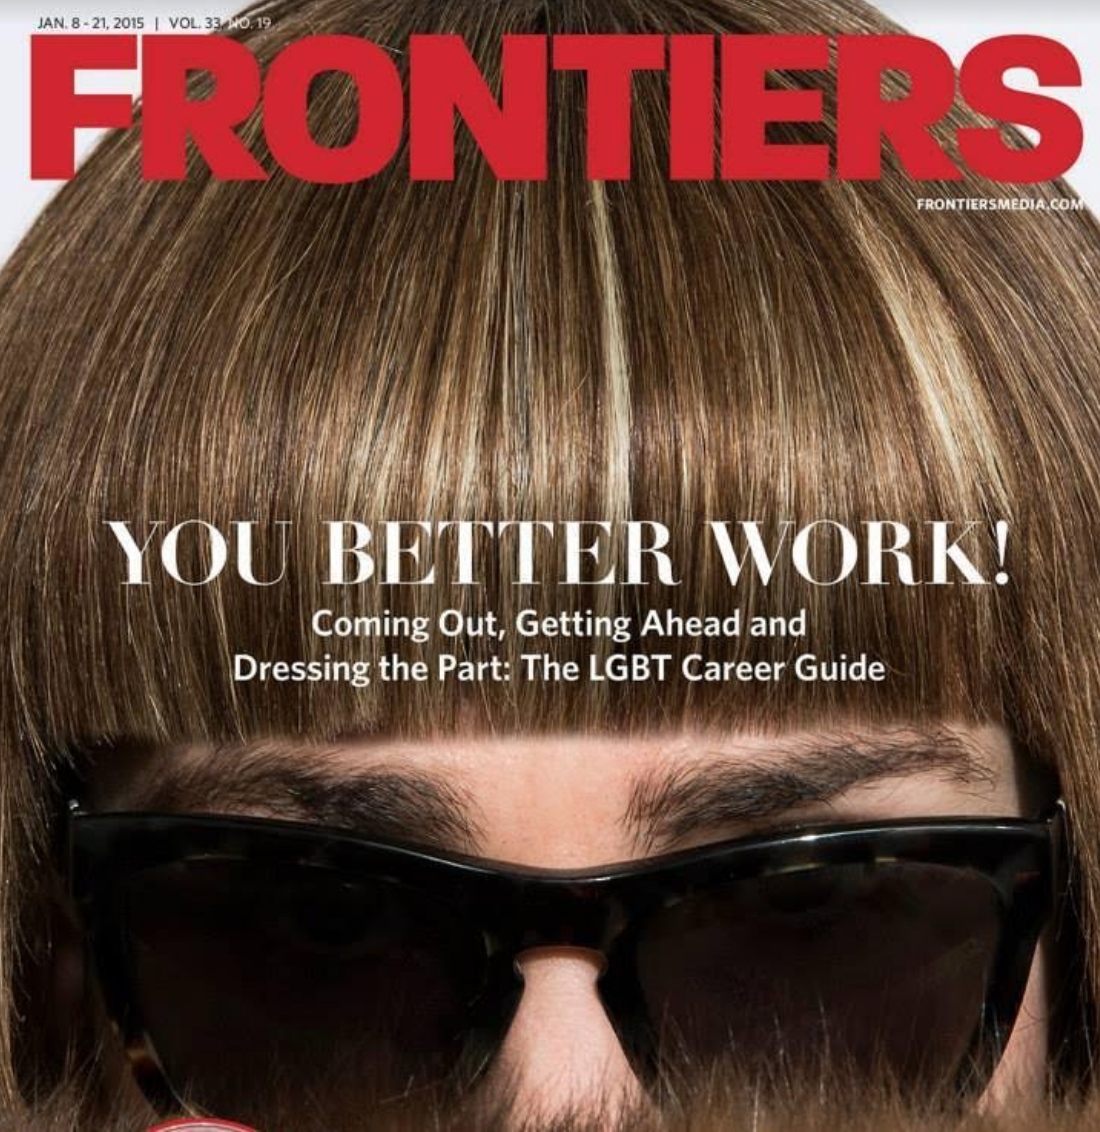 Frontiers Magazine cover featuring Ryan Raftery - photo by Andrew Werner.png